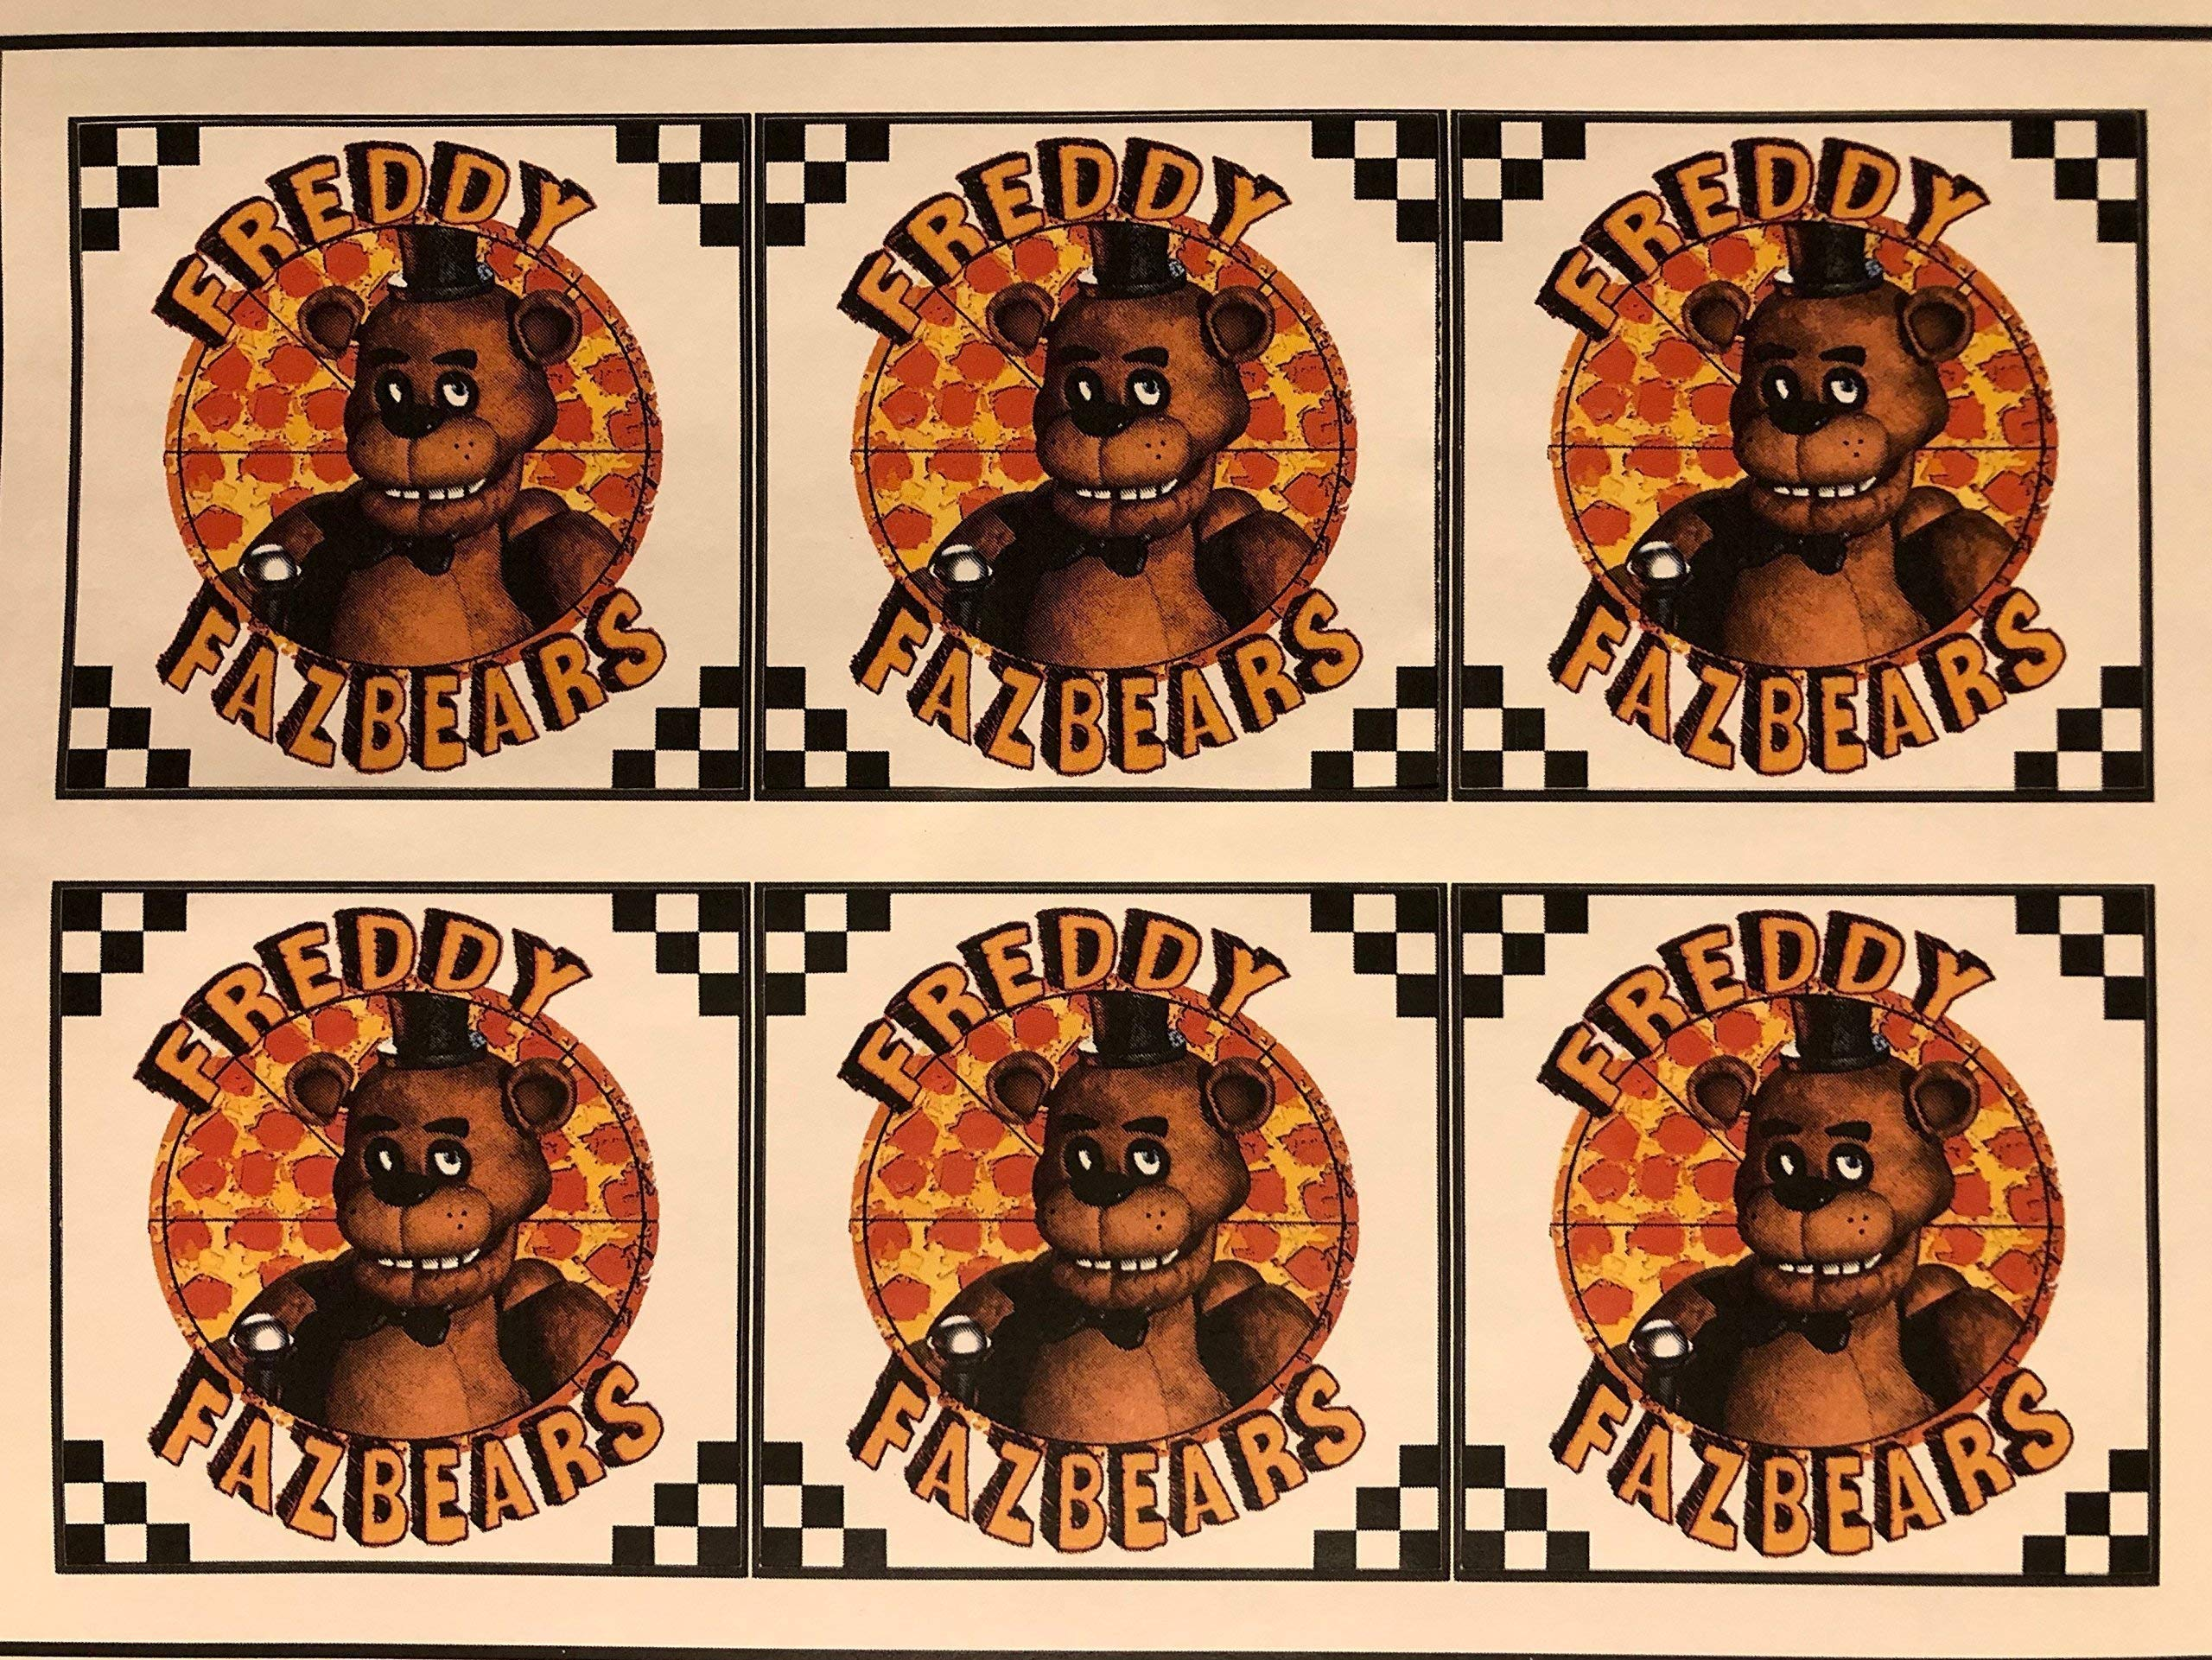 30 stickers Five Fights at Freddy's Pizza Box Stickers/Five Fights at Freddy's Party supplies/Five Fights at Freddy's Birthday/FNAF Pizza stickers/Five Fights at Freddy's/FNAF Party supplies